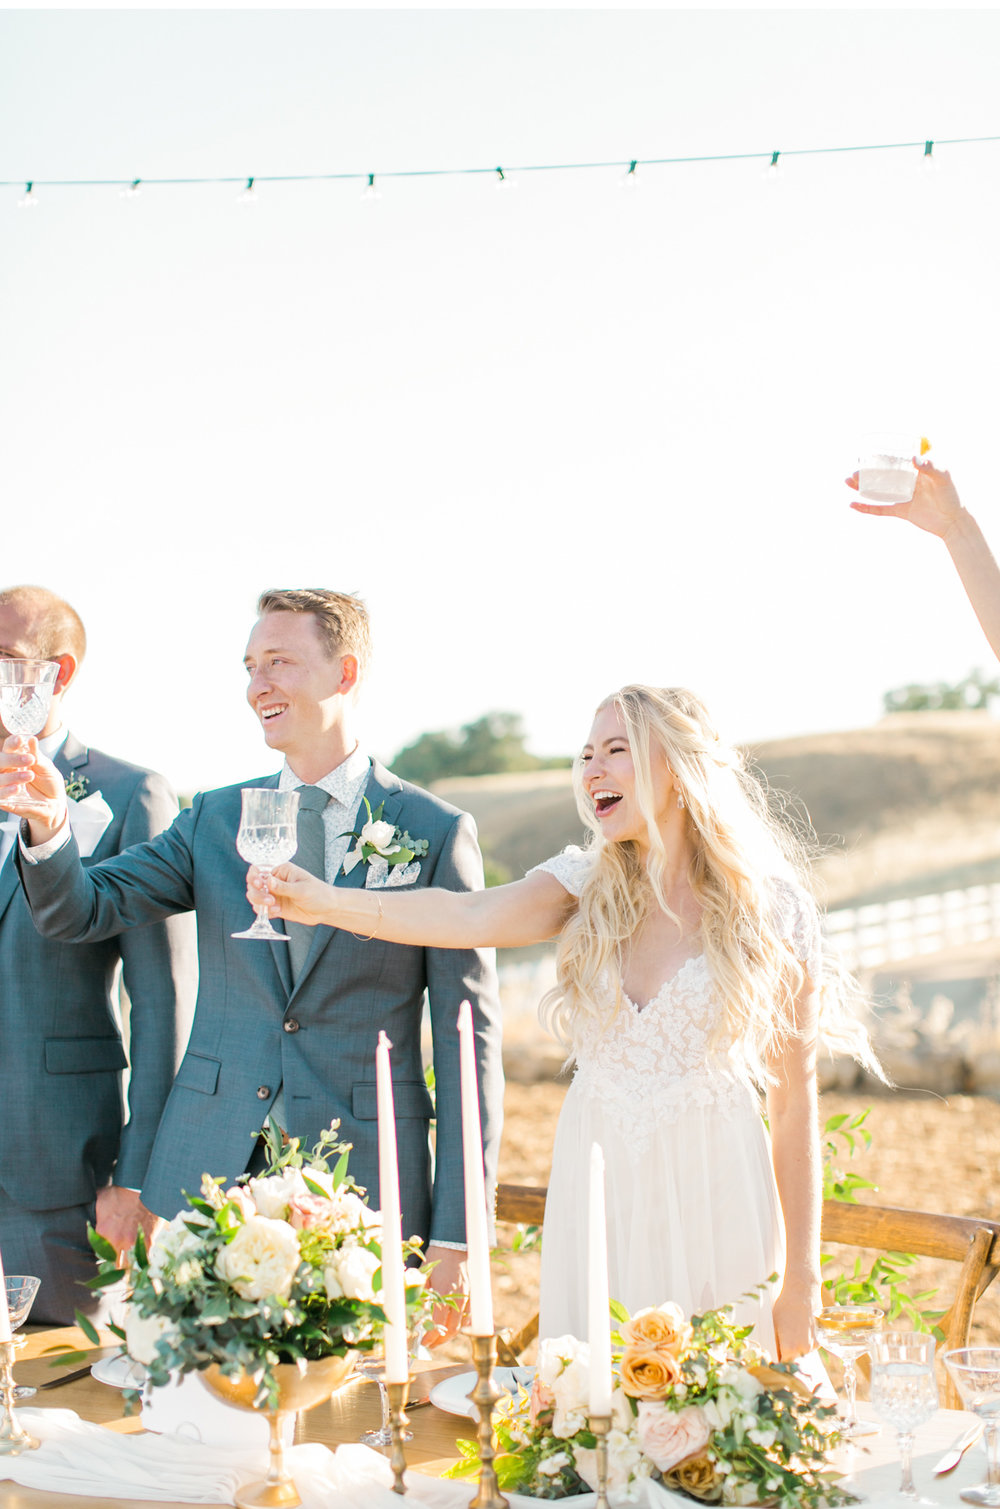 Natalie-Schutt-Photography's-Wedding-Style-Me-Pretty-Paso-Robles_11.jpg